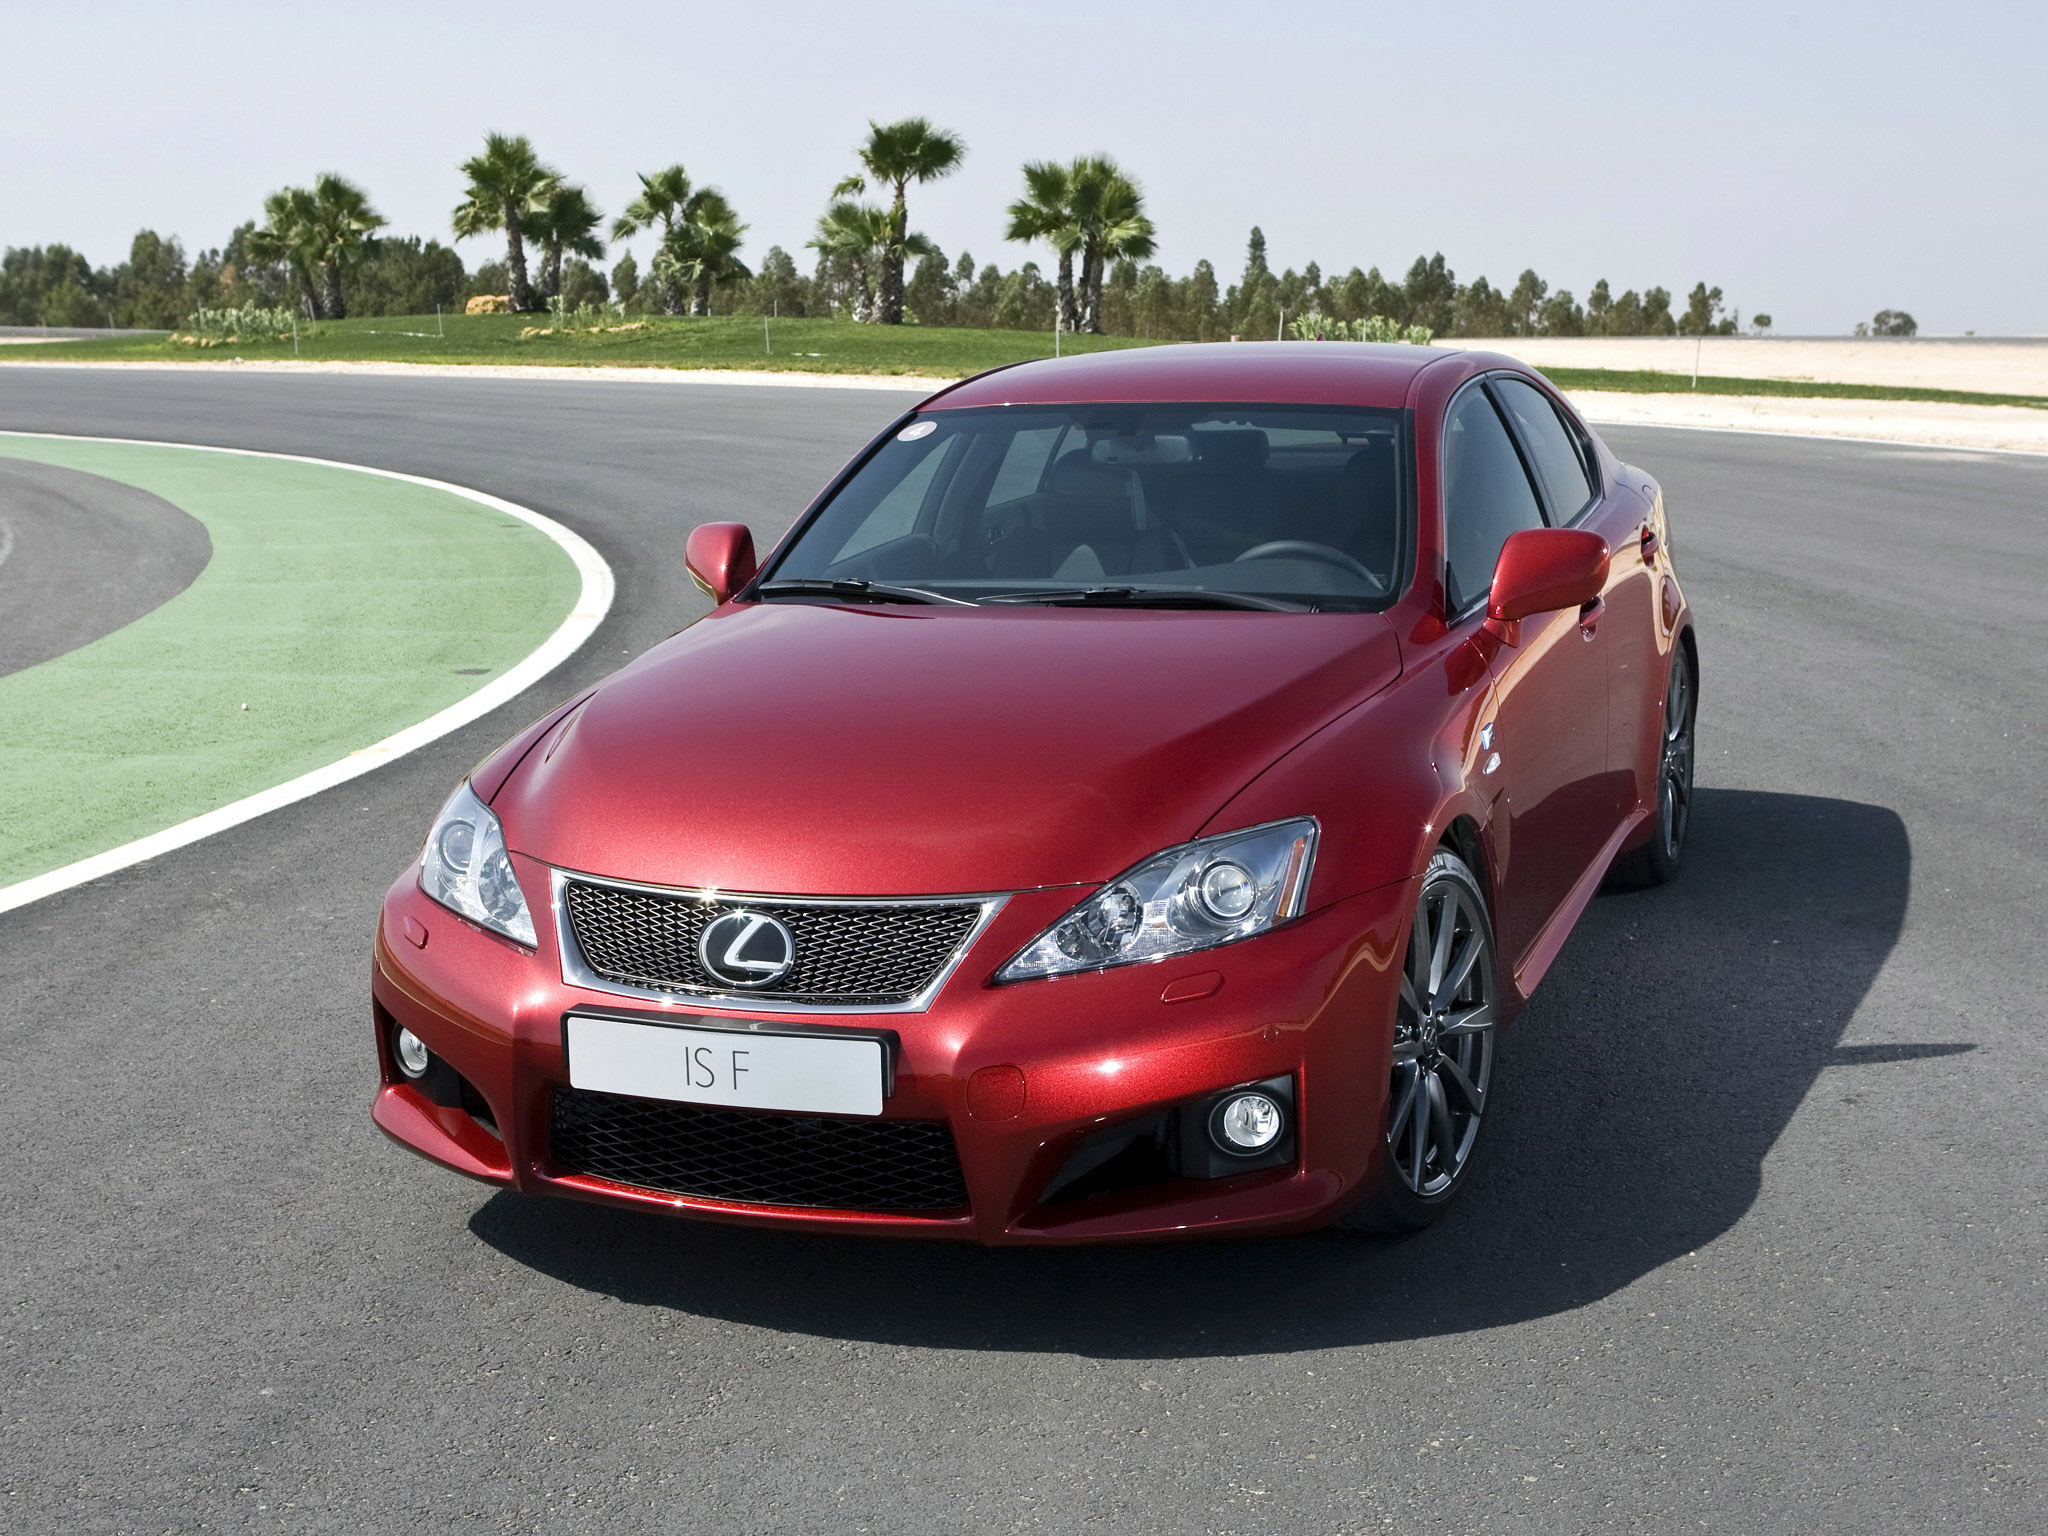 Lexus IS F  drive Free Picture Download Image Of